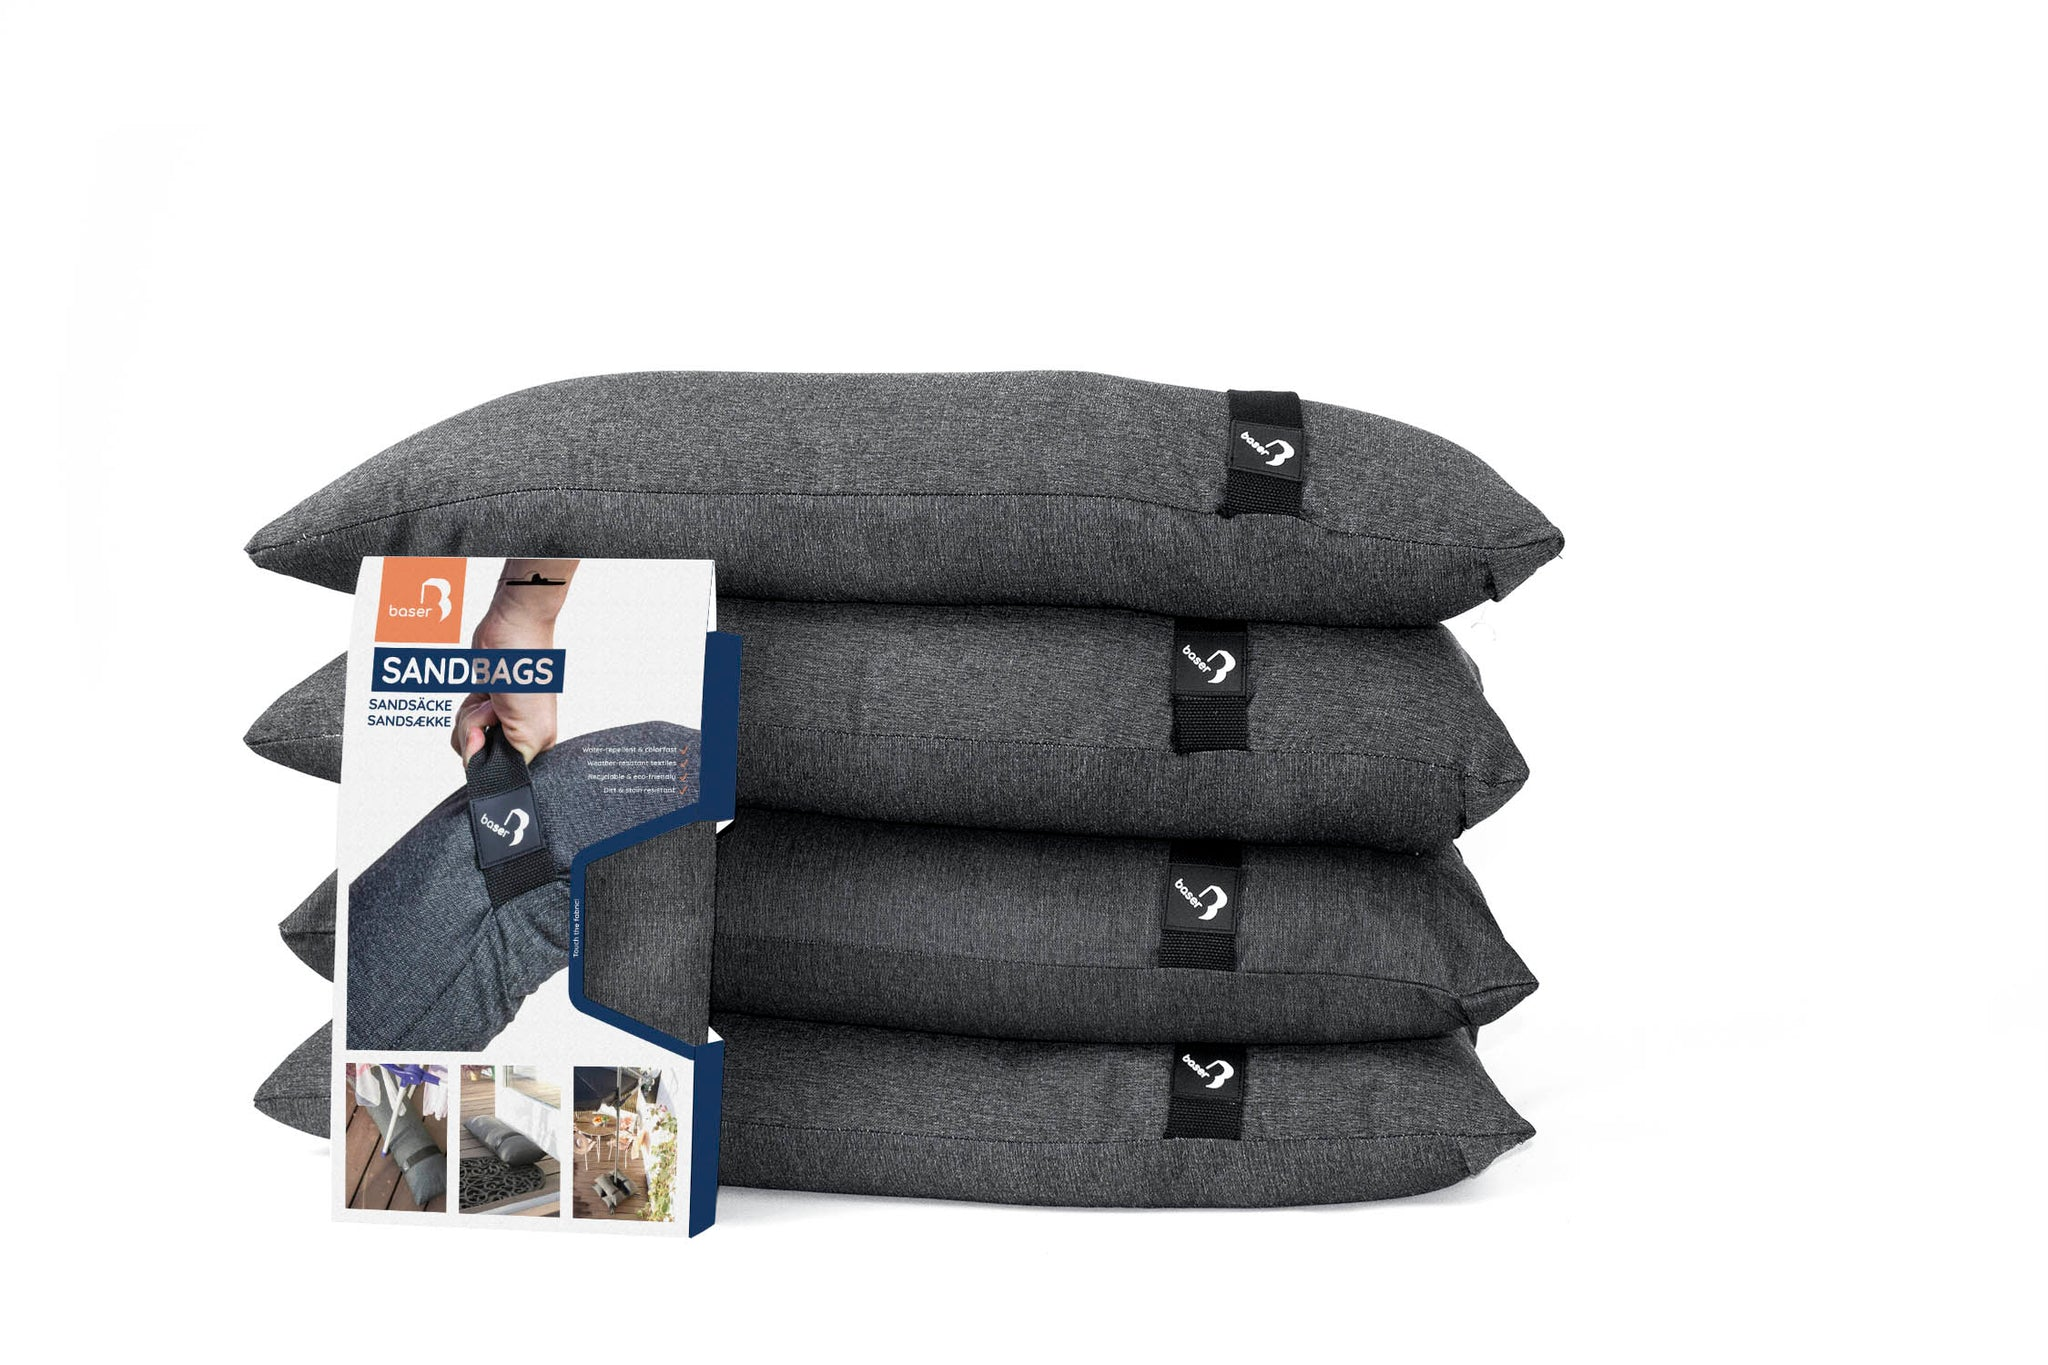 Baser outdoor sandbags